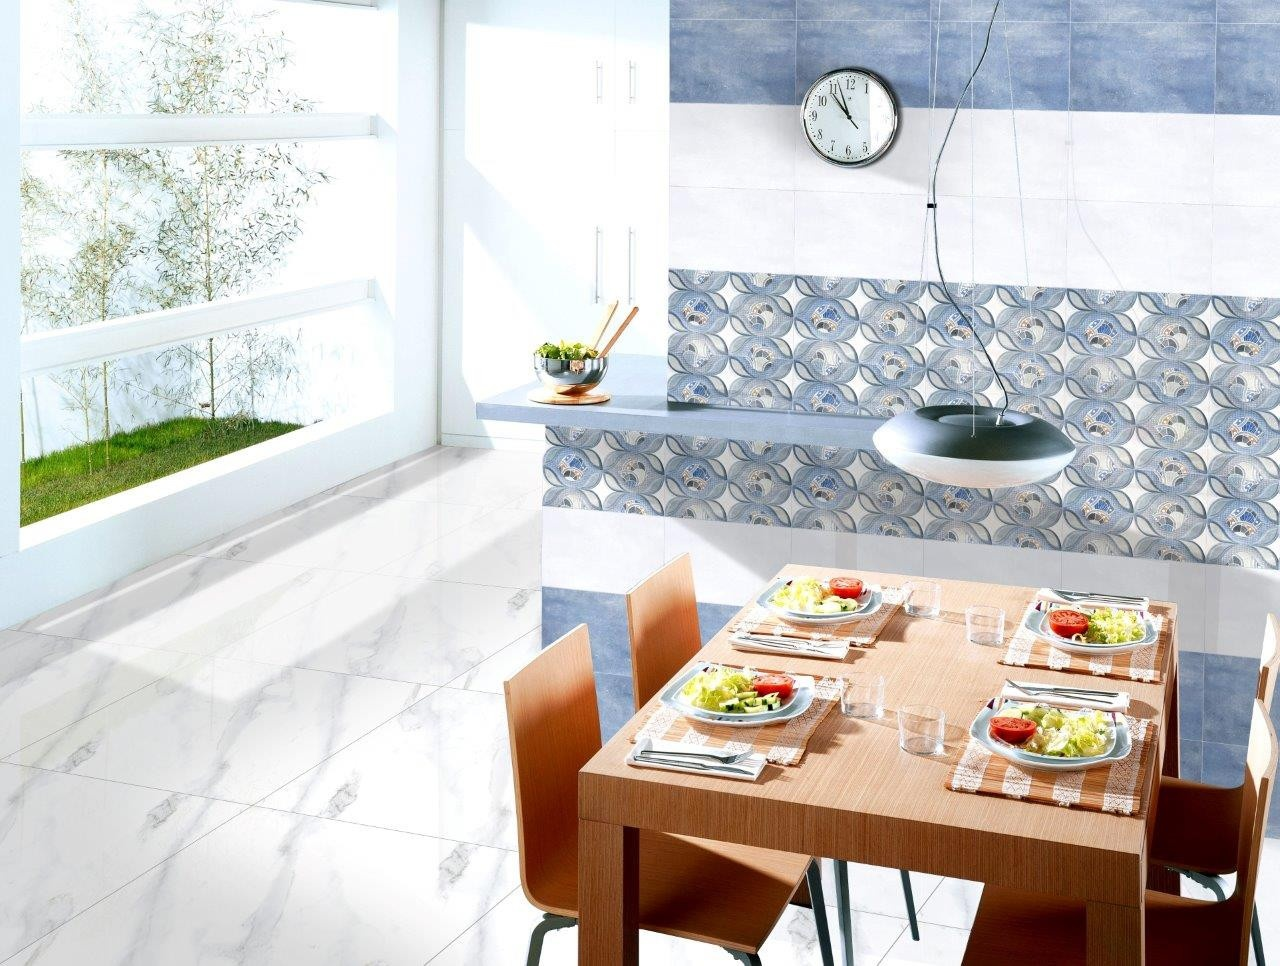 Here Are Some Of Concepts Designed With Their Kitchen Tiles These Include Wall And Floor Variations Such As